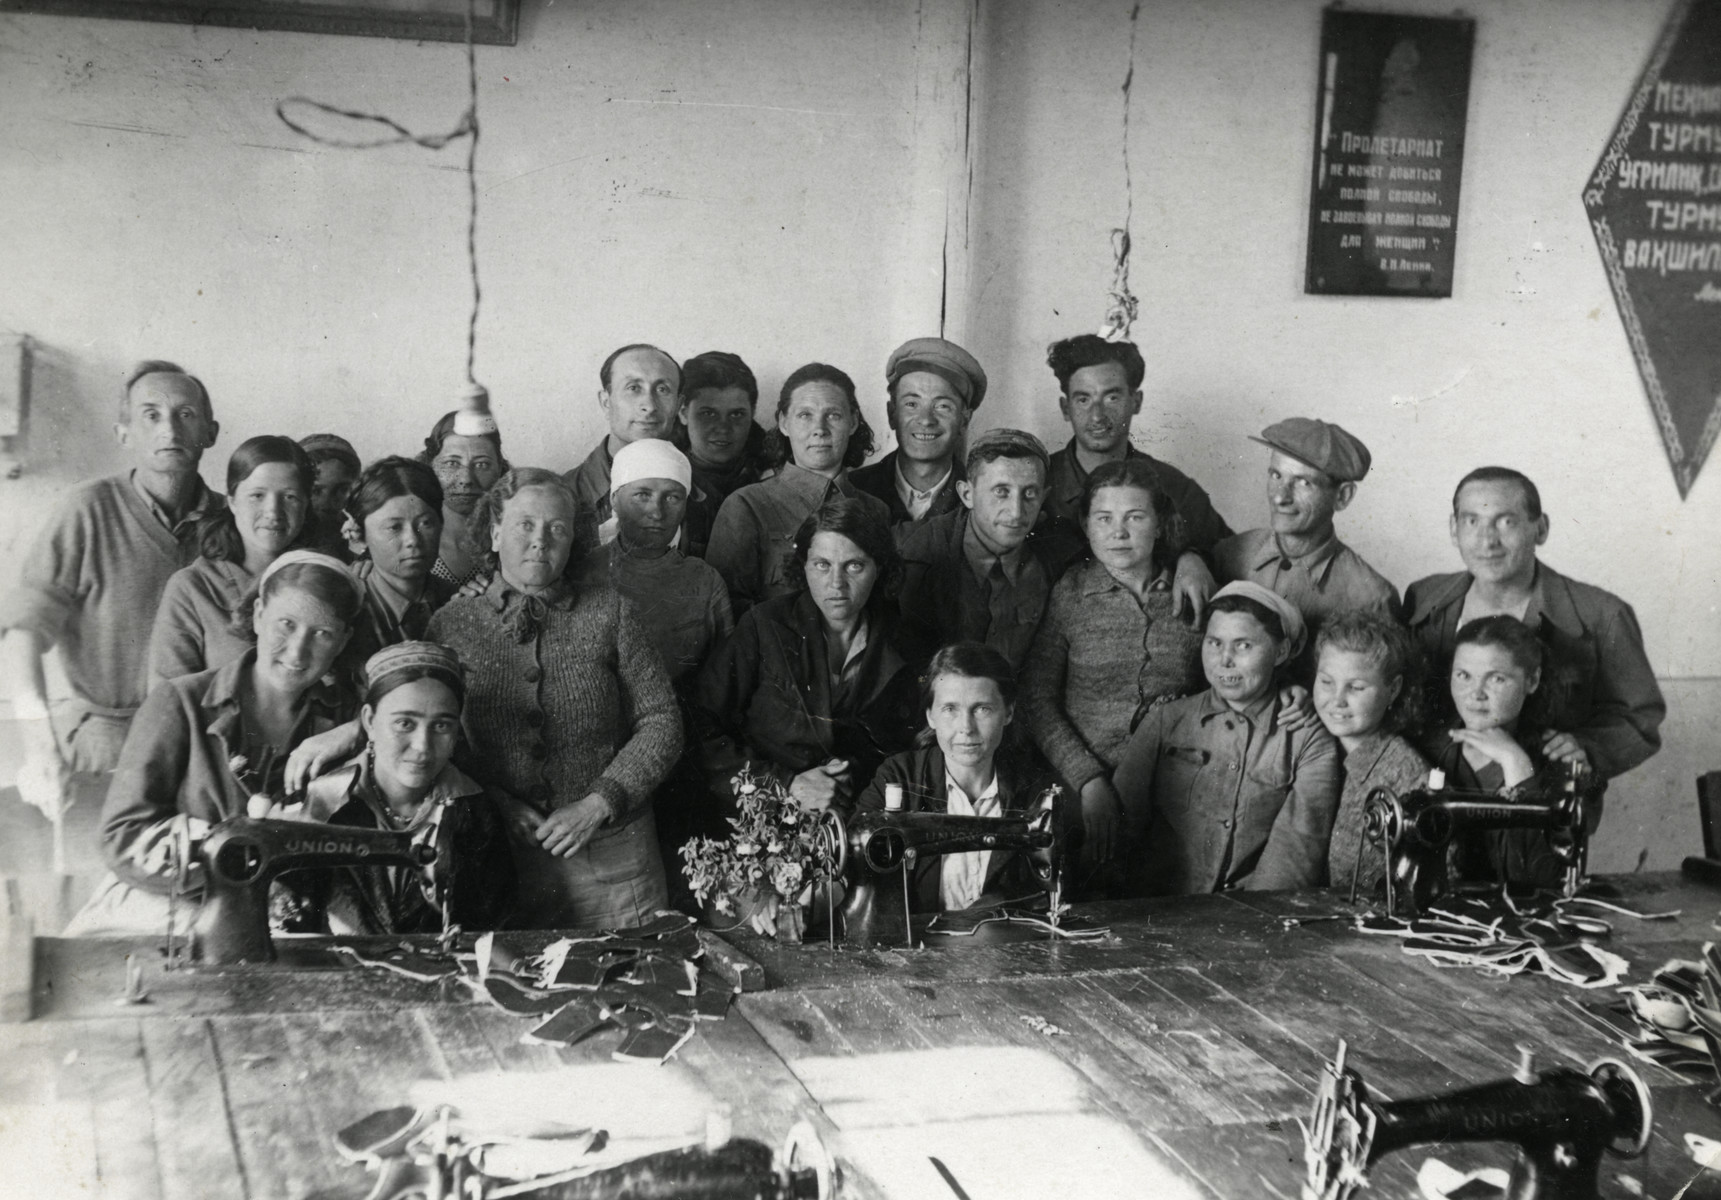 Workers at the Sparta shoe factory pose with their sewing machines.  Jonas Markowicz is standing on the right,